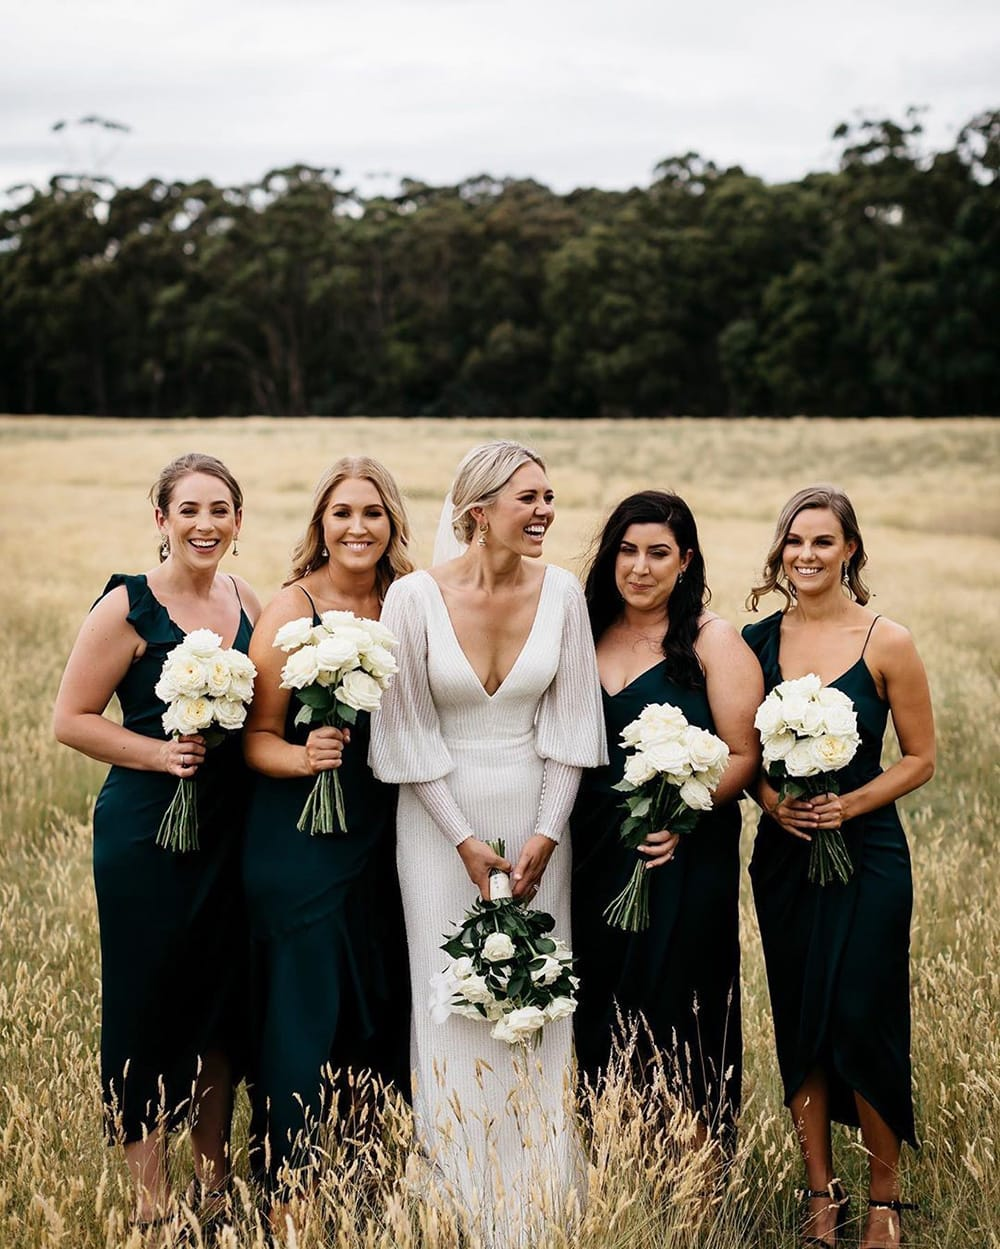 10 Fun Things to Do on Your Wedding Morning with Your Bridesmaids | Photography: Katie Harmsworth